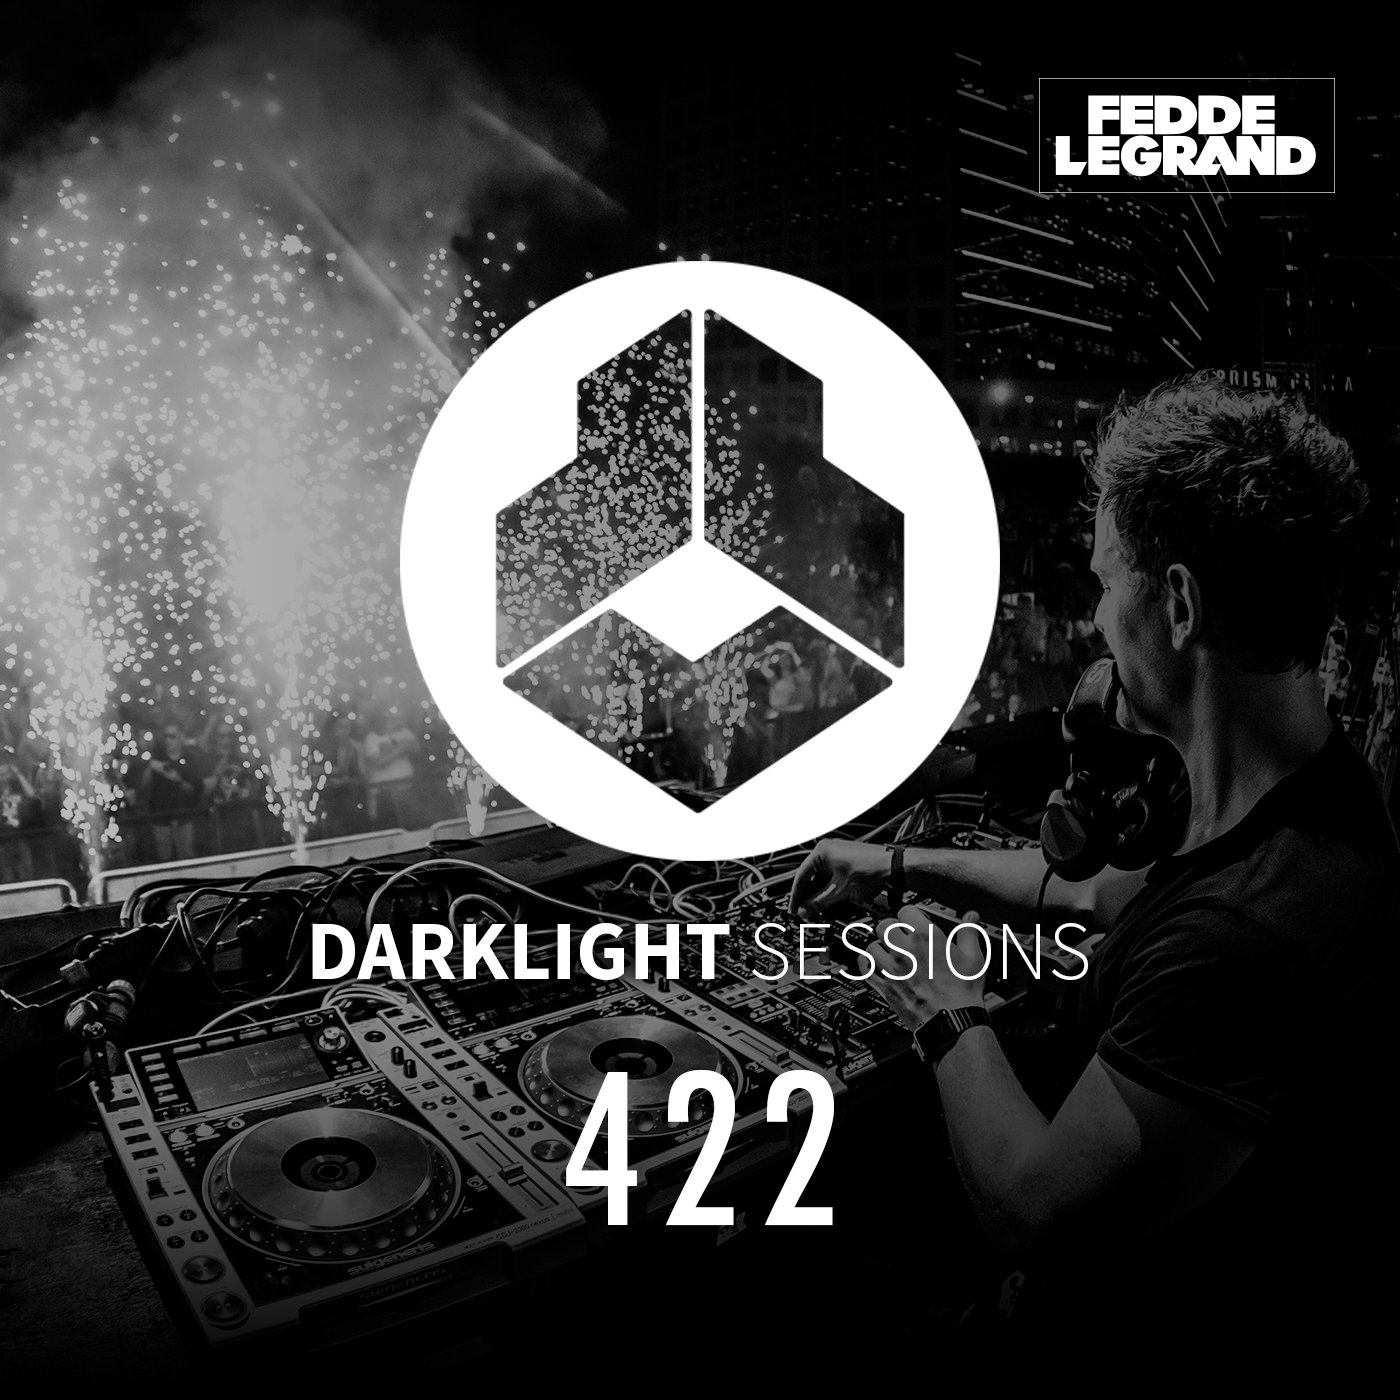 Darklight Sessions 422